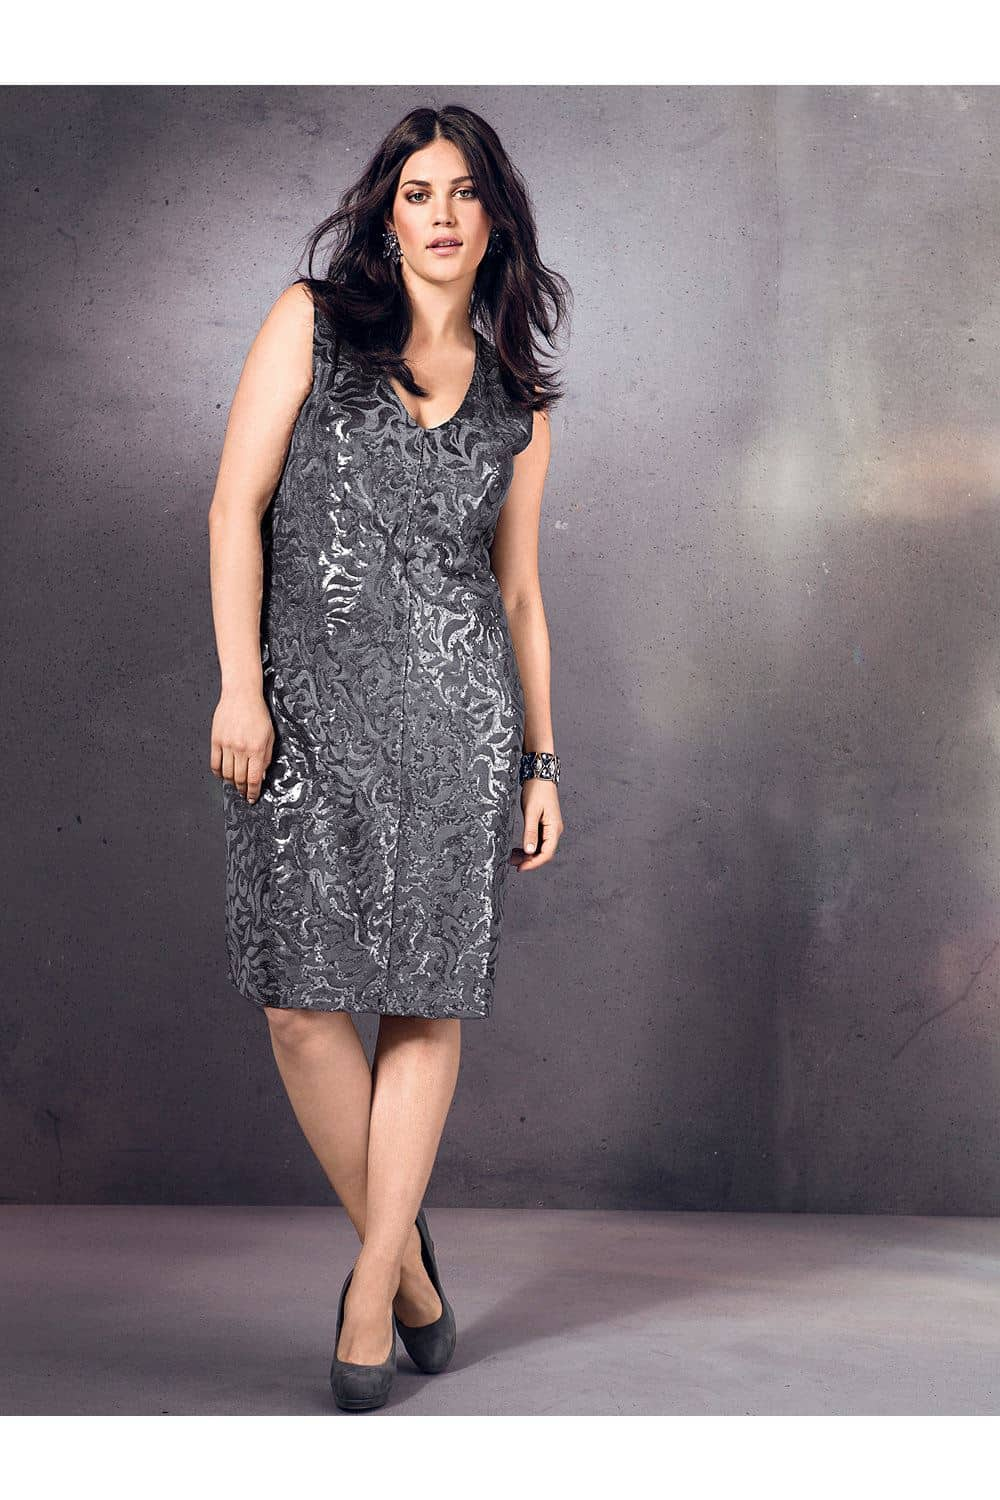 plus size dresses: woman wearing grey sequined dress